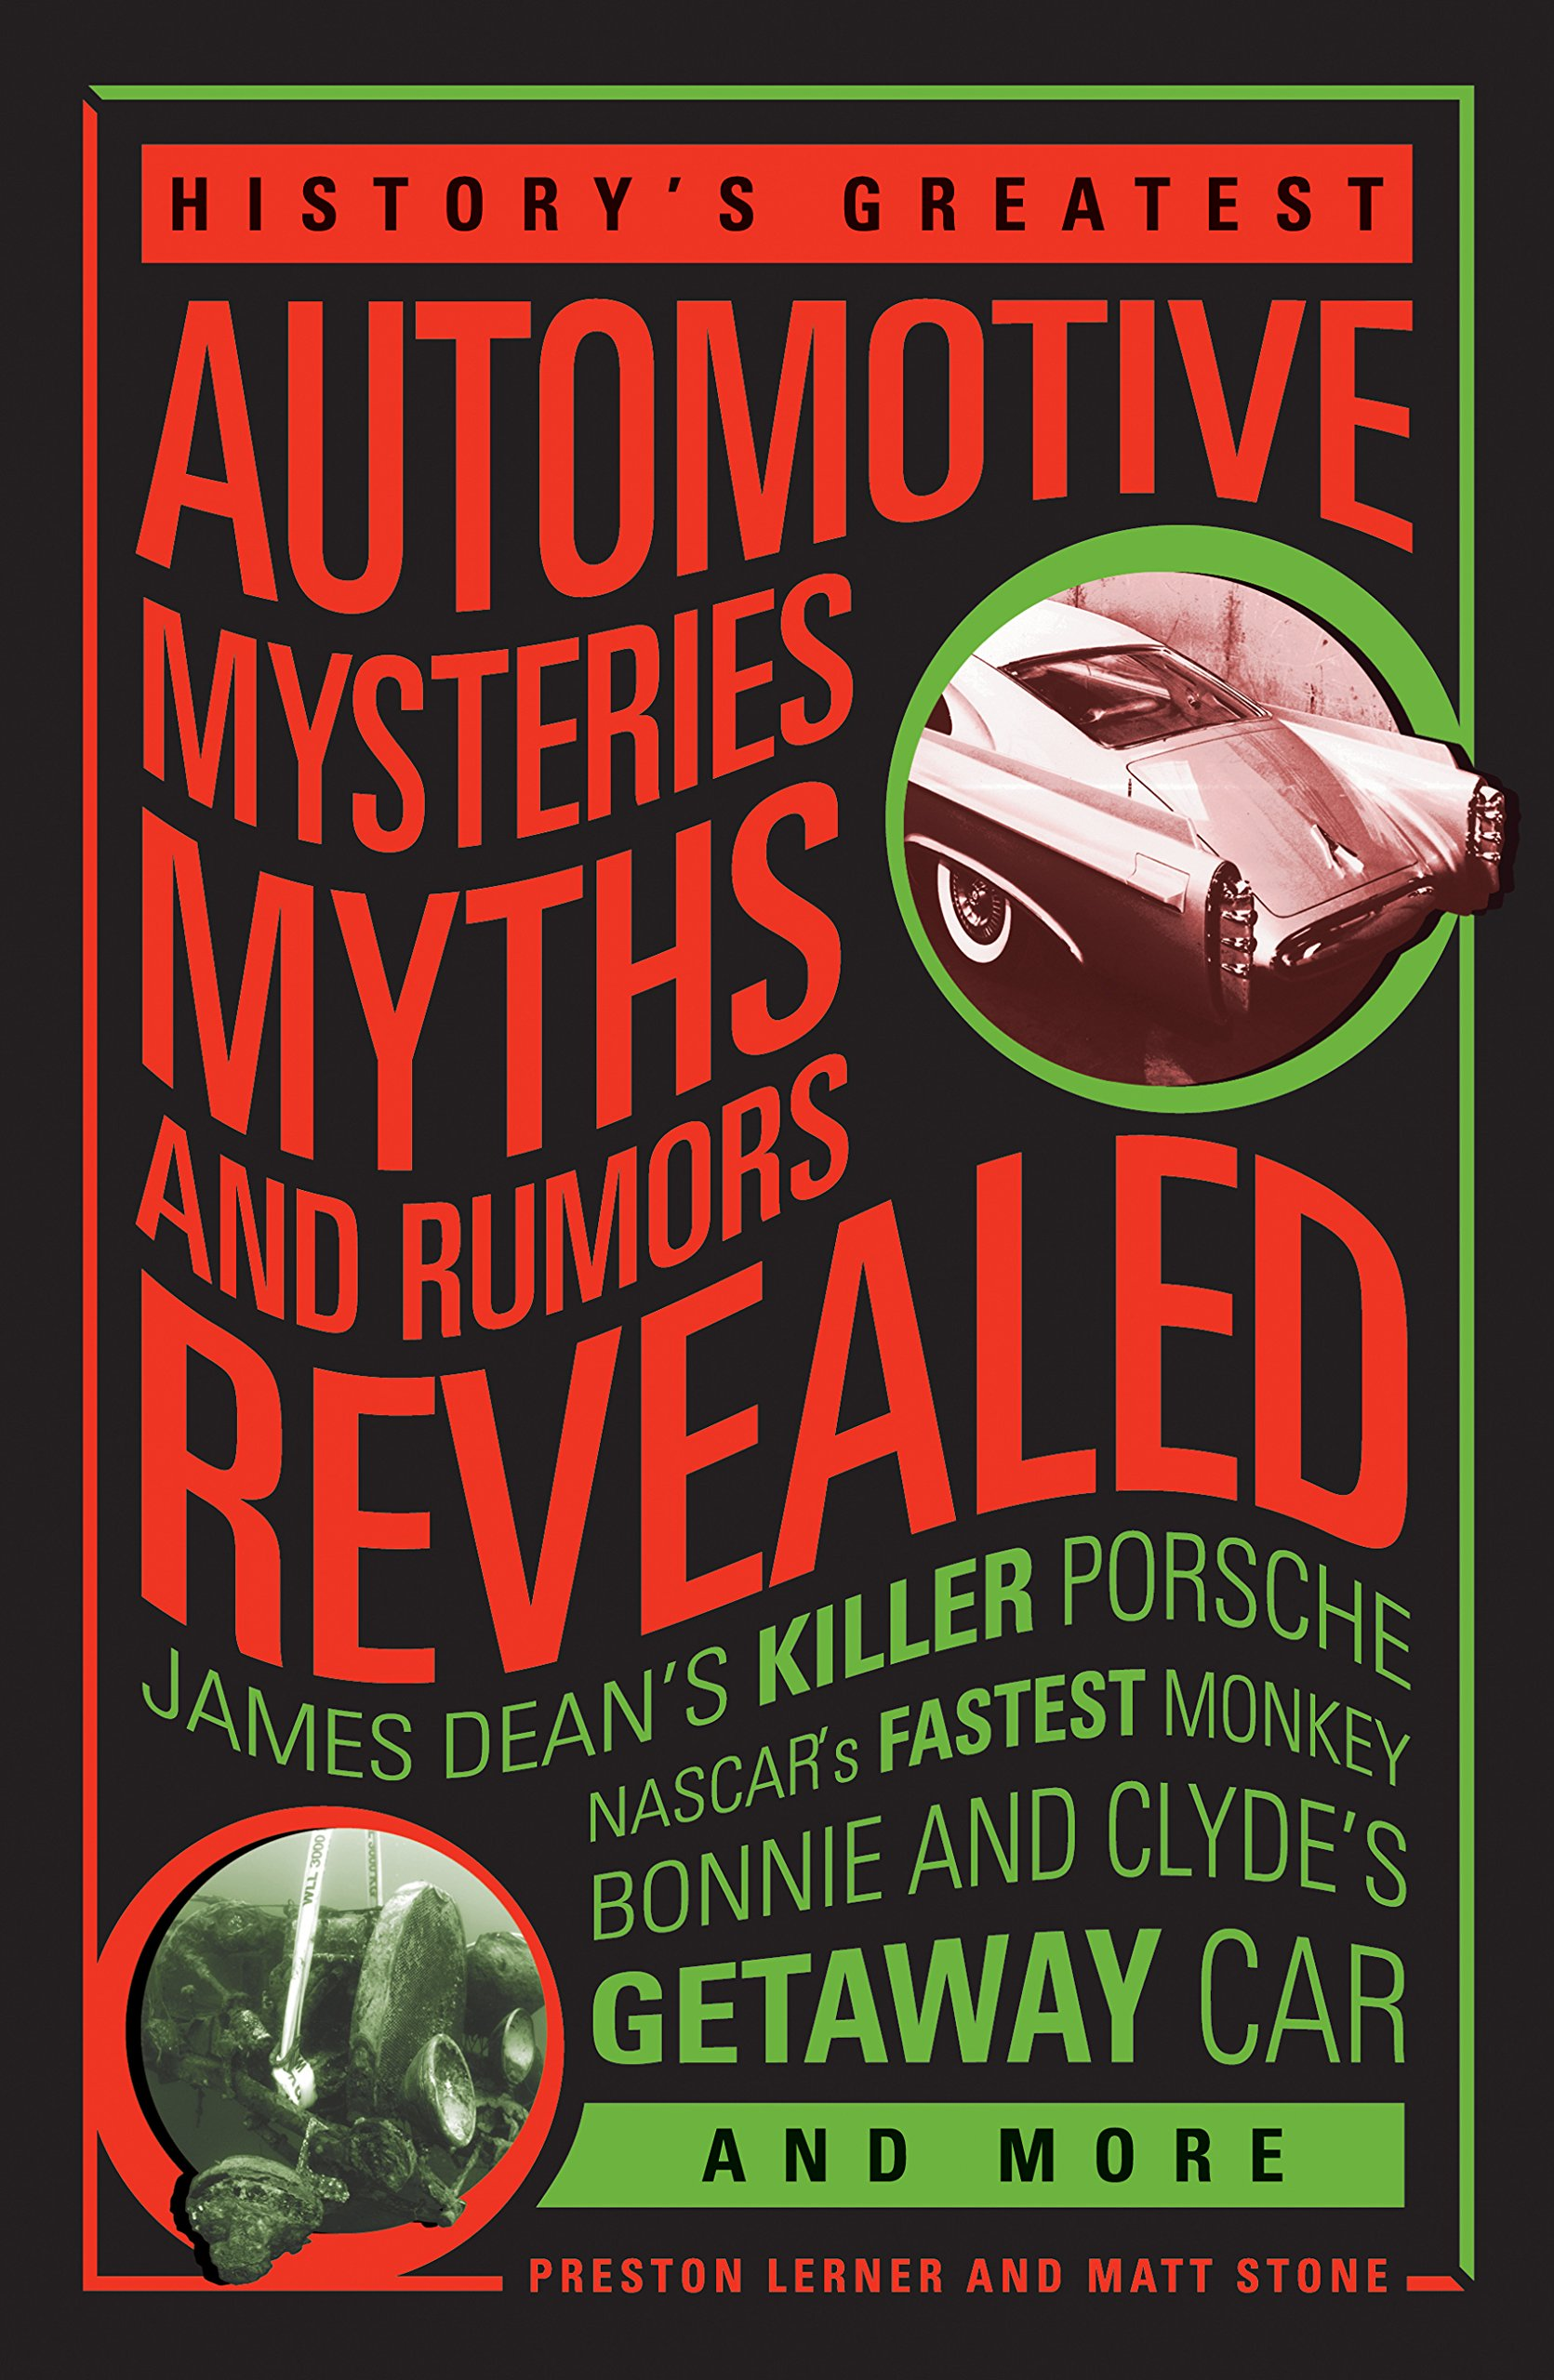 Download History's Greatest Automotive Mysteries, Myths, and Rumors Revealed: James Dean's Killer Porsche, NASCAR's Fastest Monkey, Bonnie and Clyde's Getaway Car, and More ebook